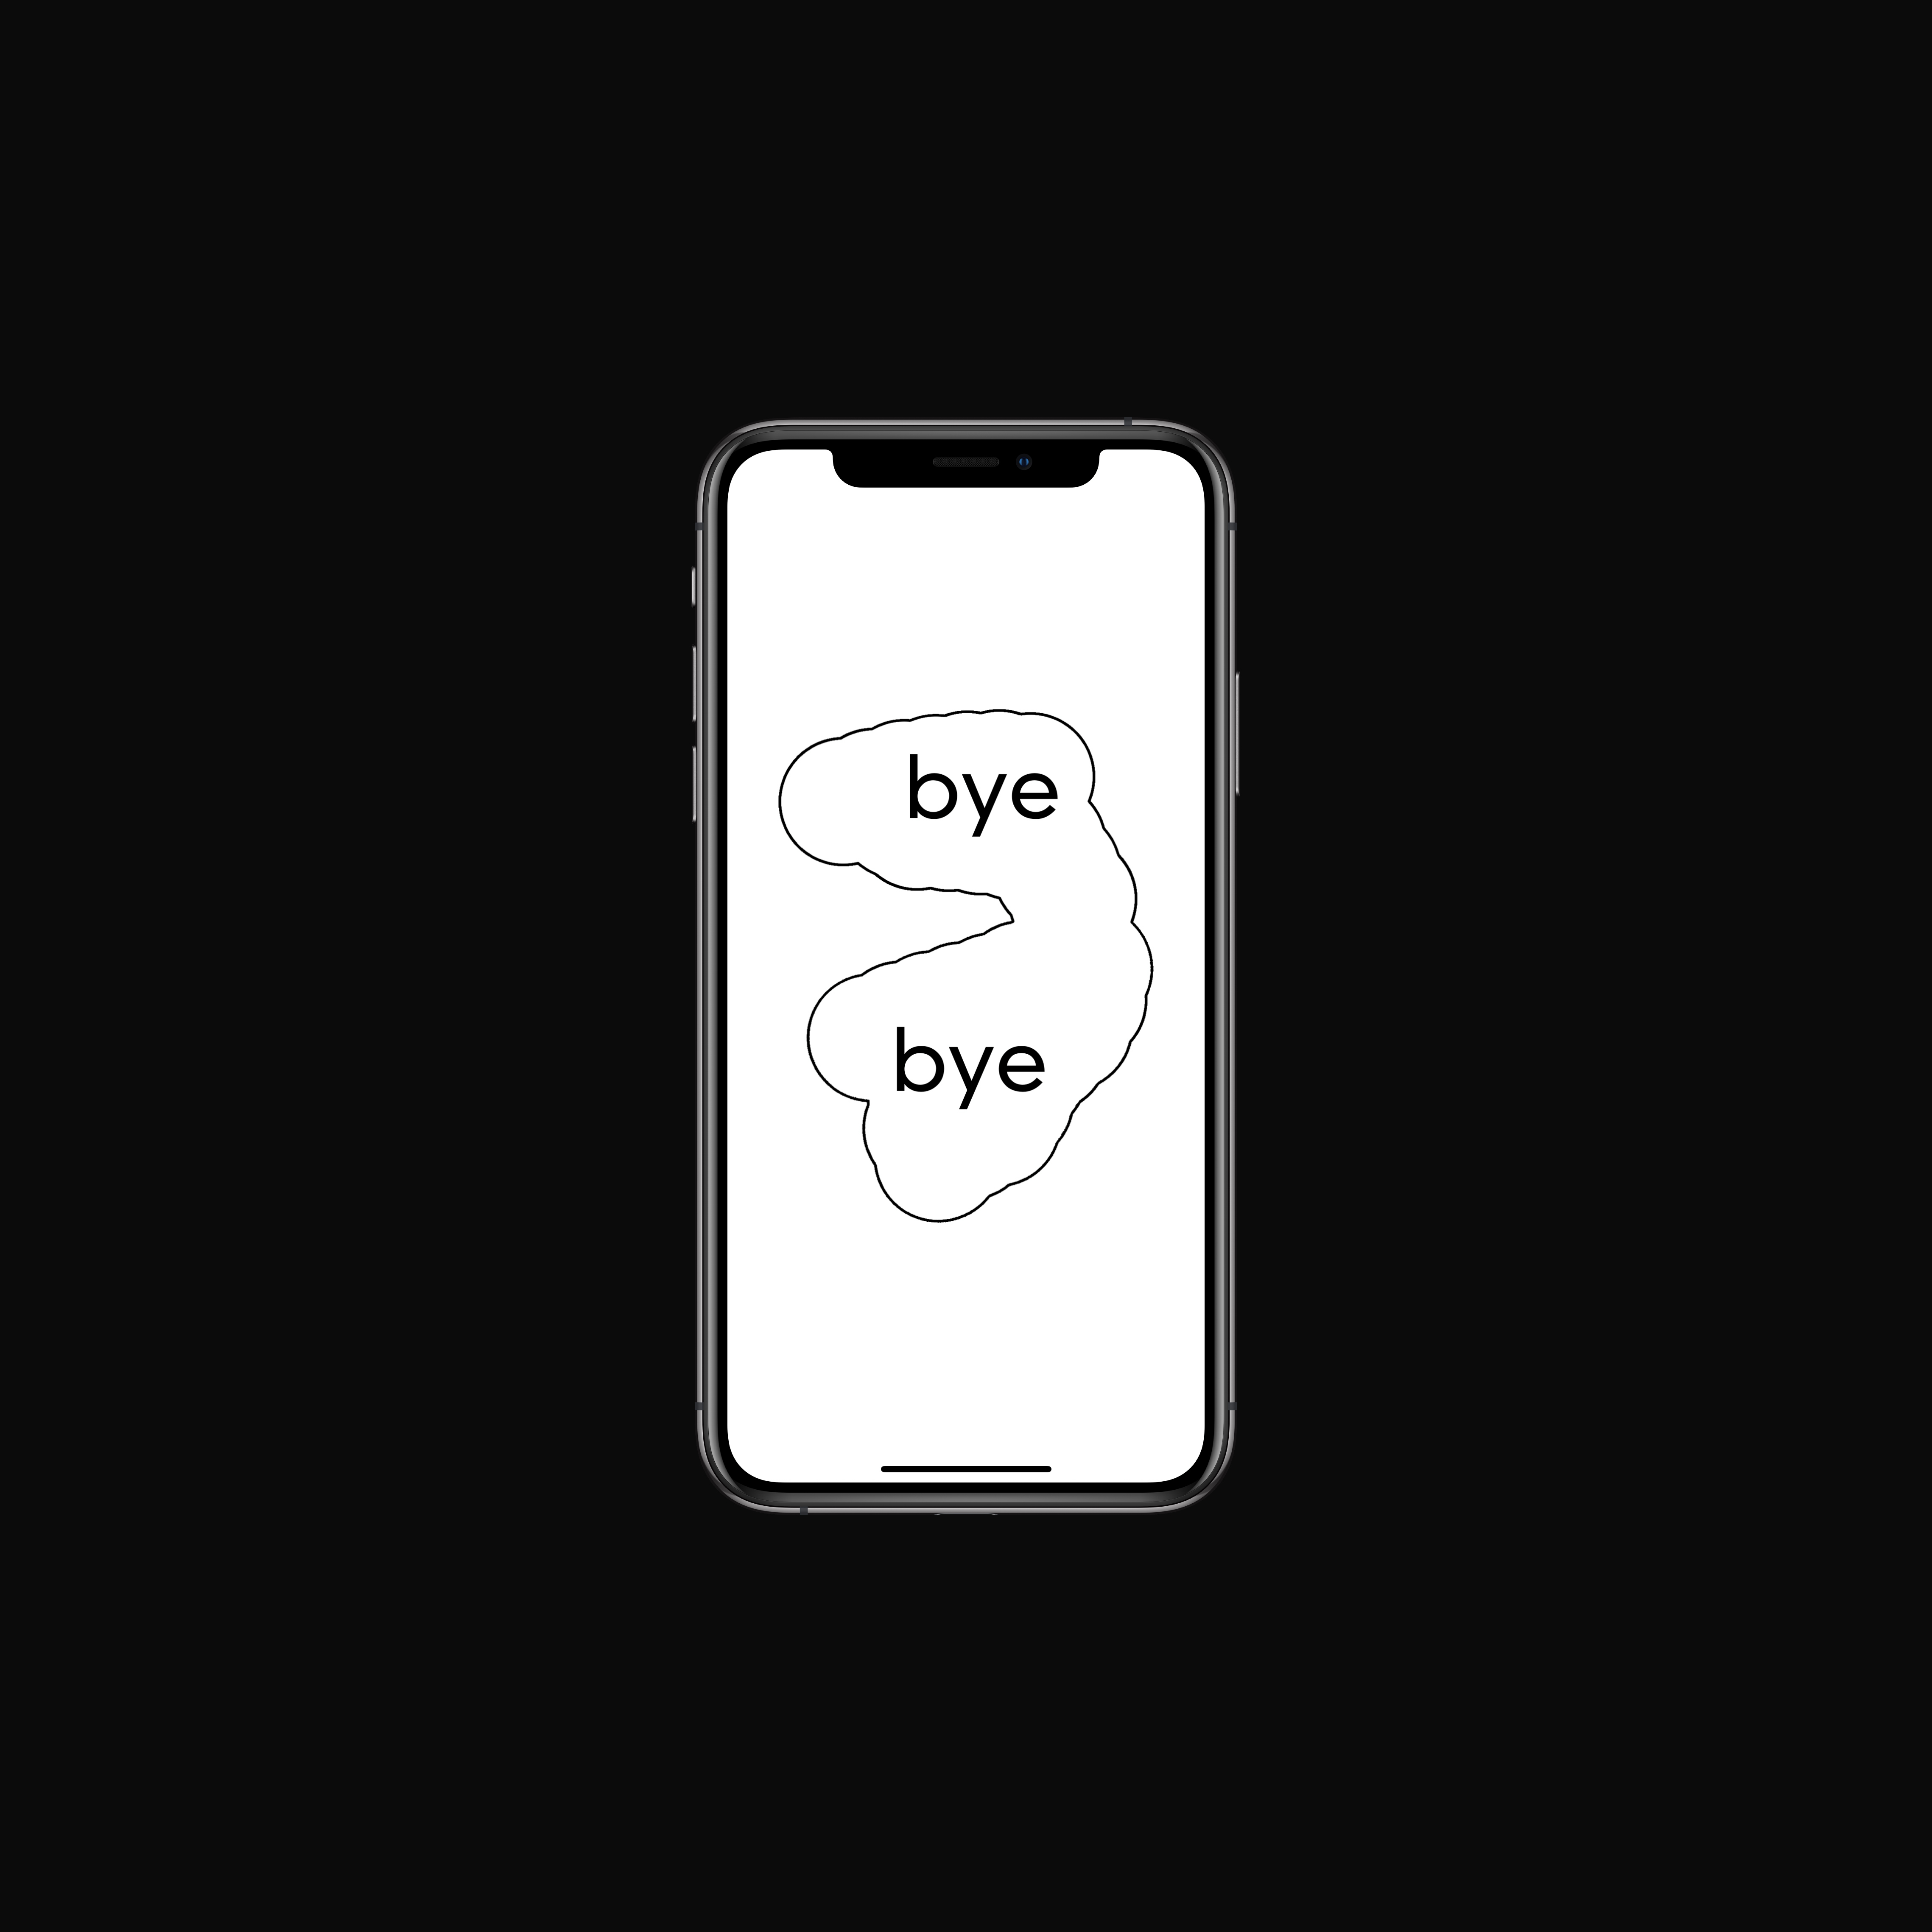 Bye Bye Camera is an iOS app that removes humans from photos